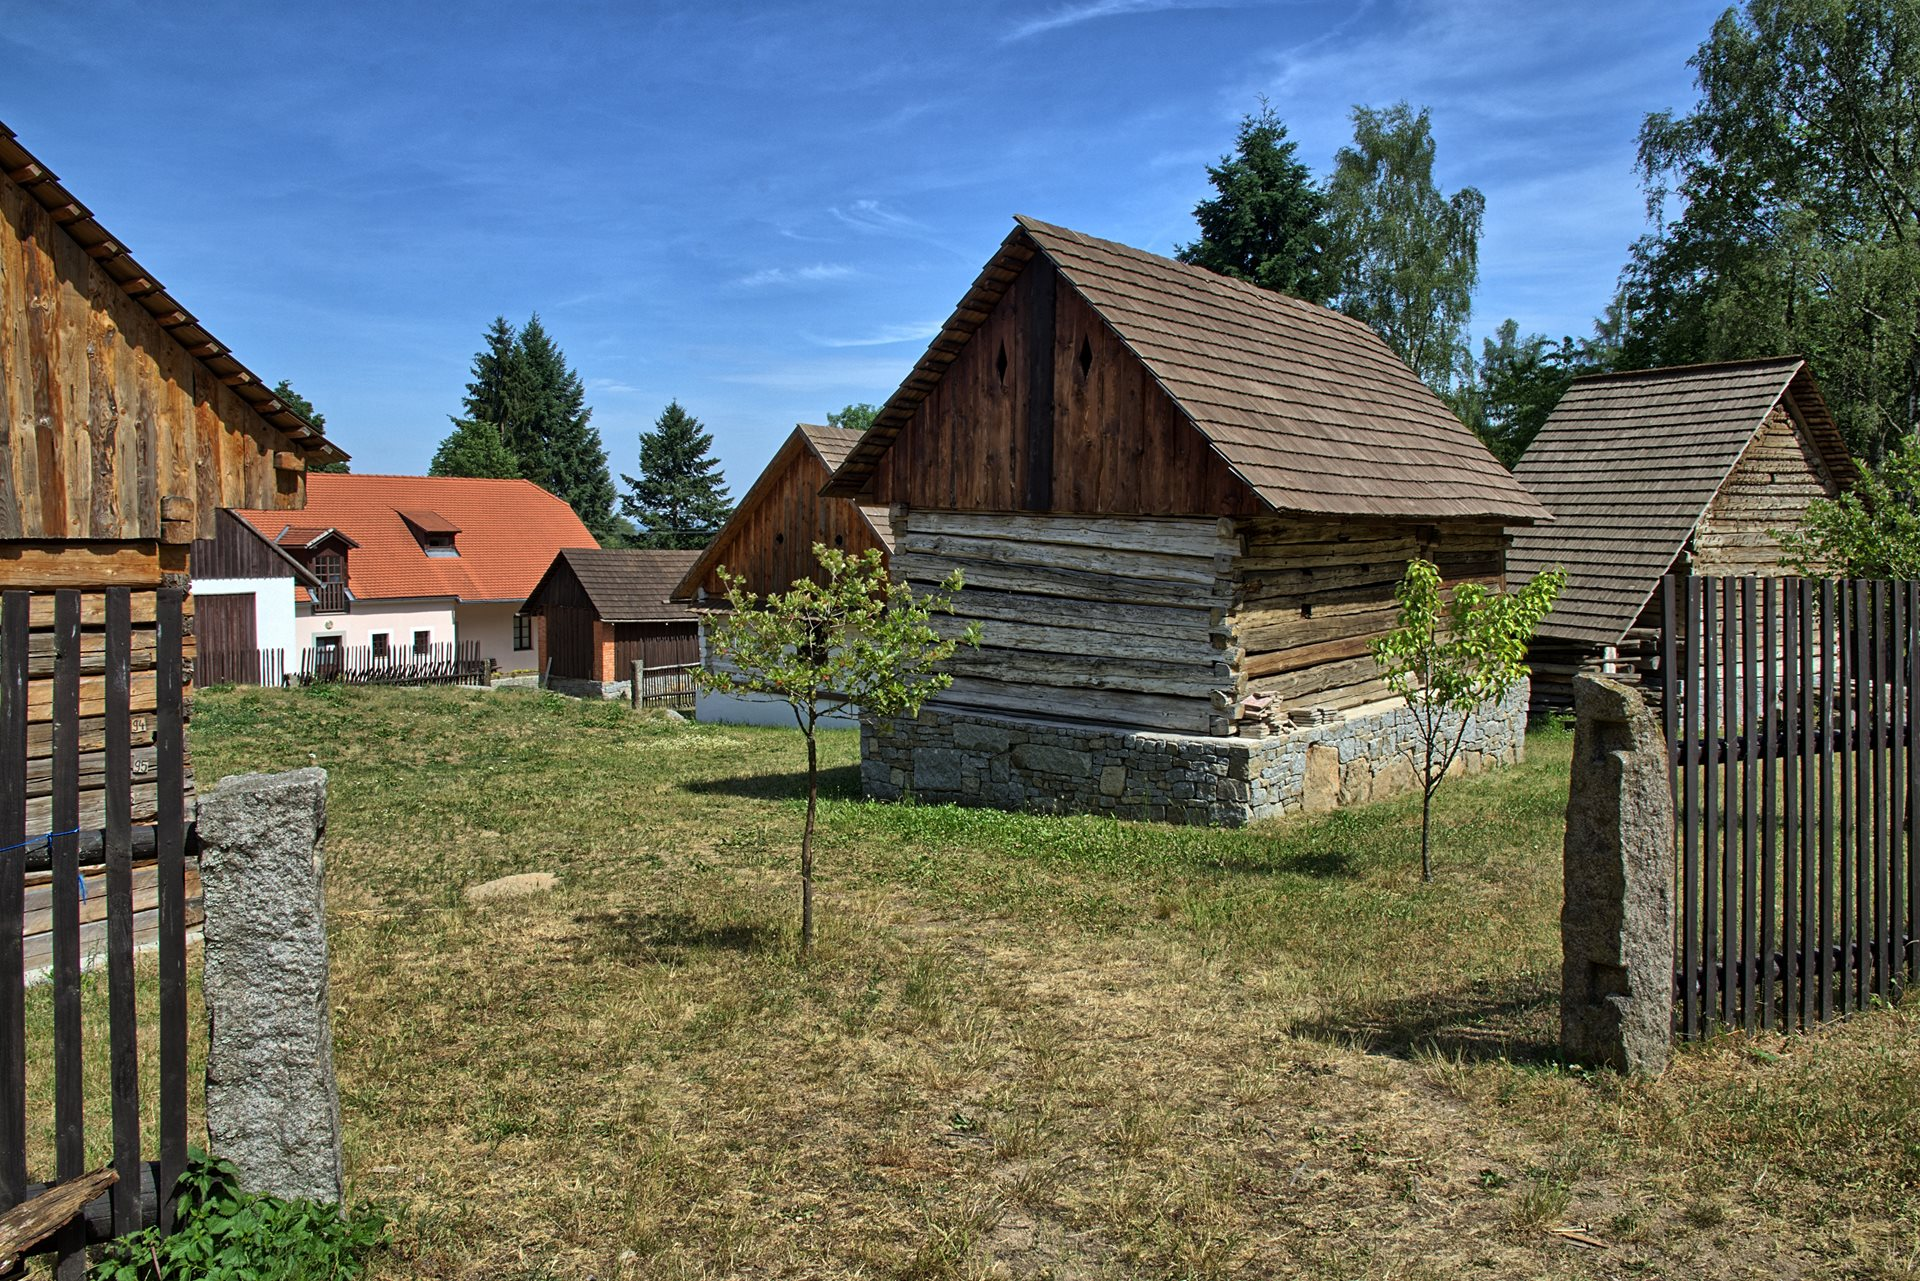 Chanovice open-air museum – folk architecture exhibition